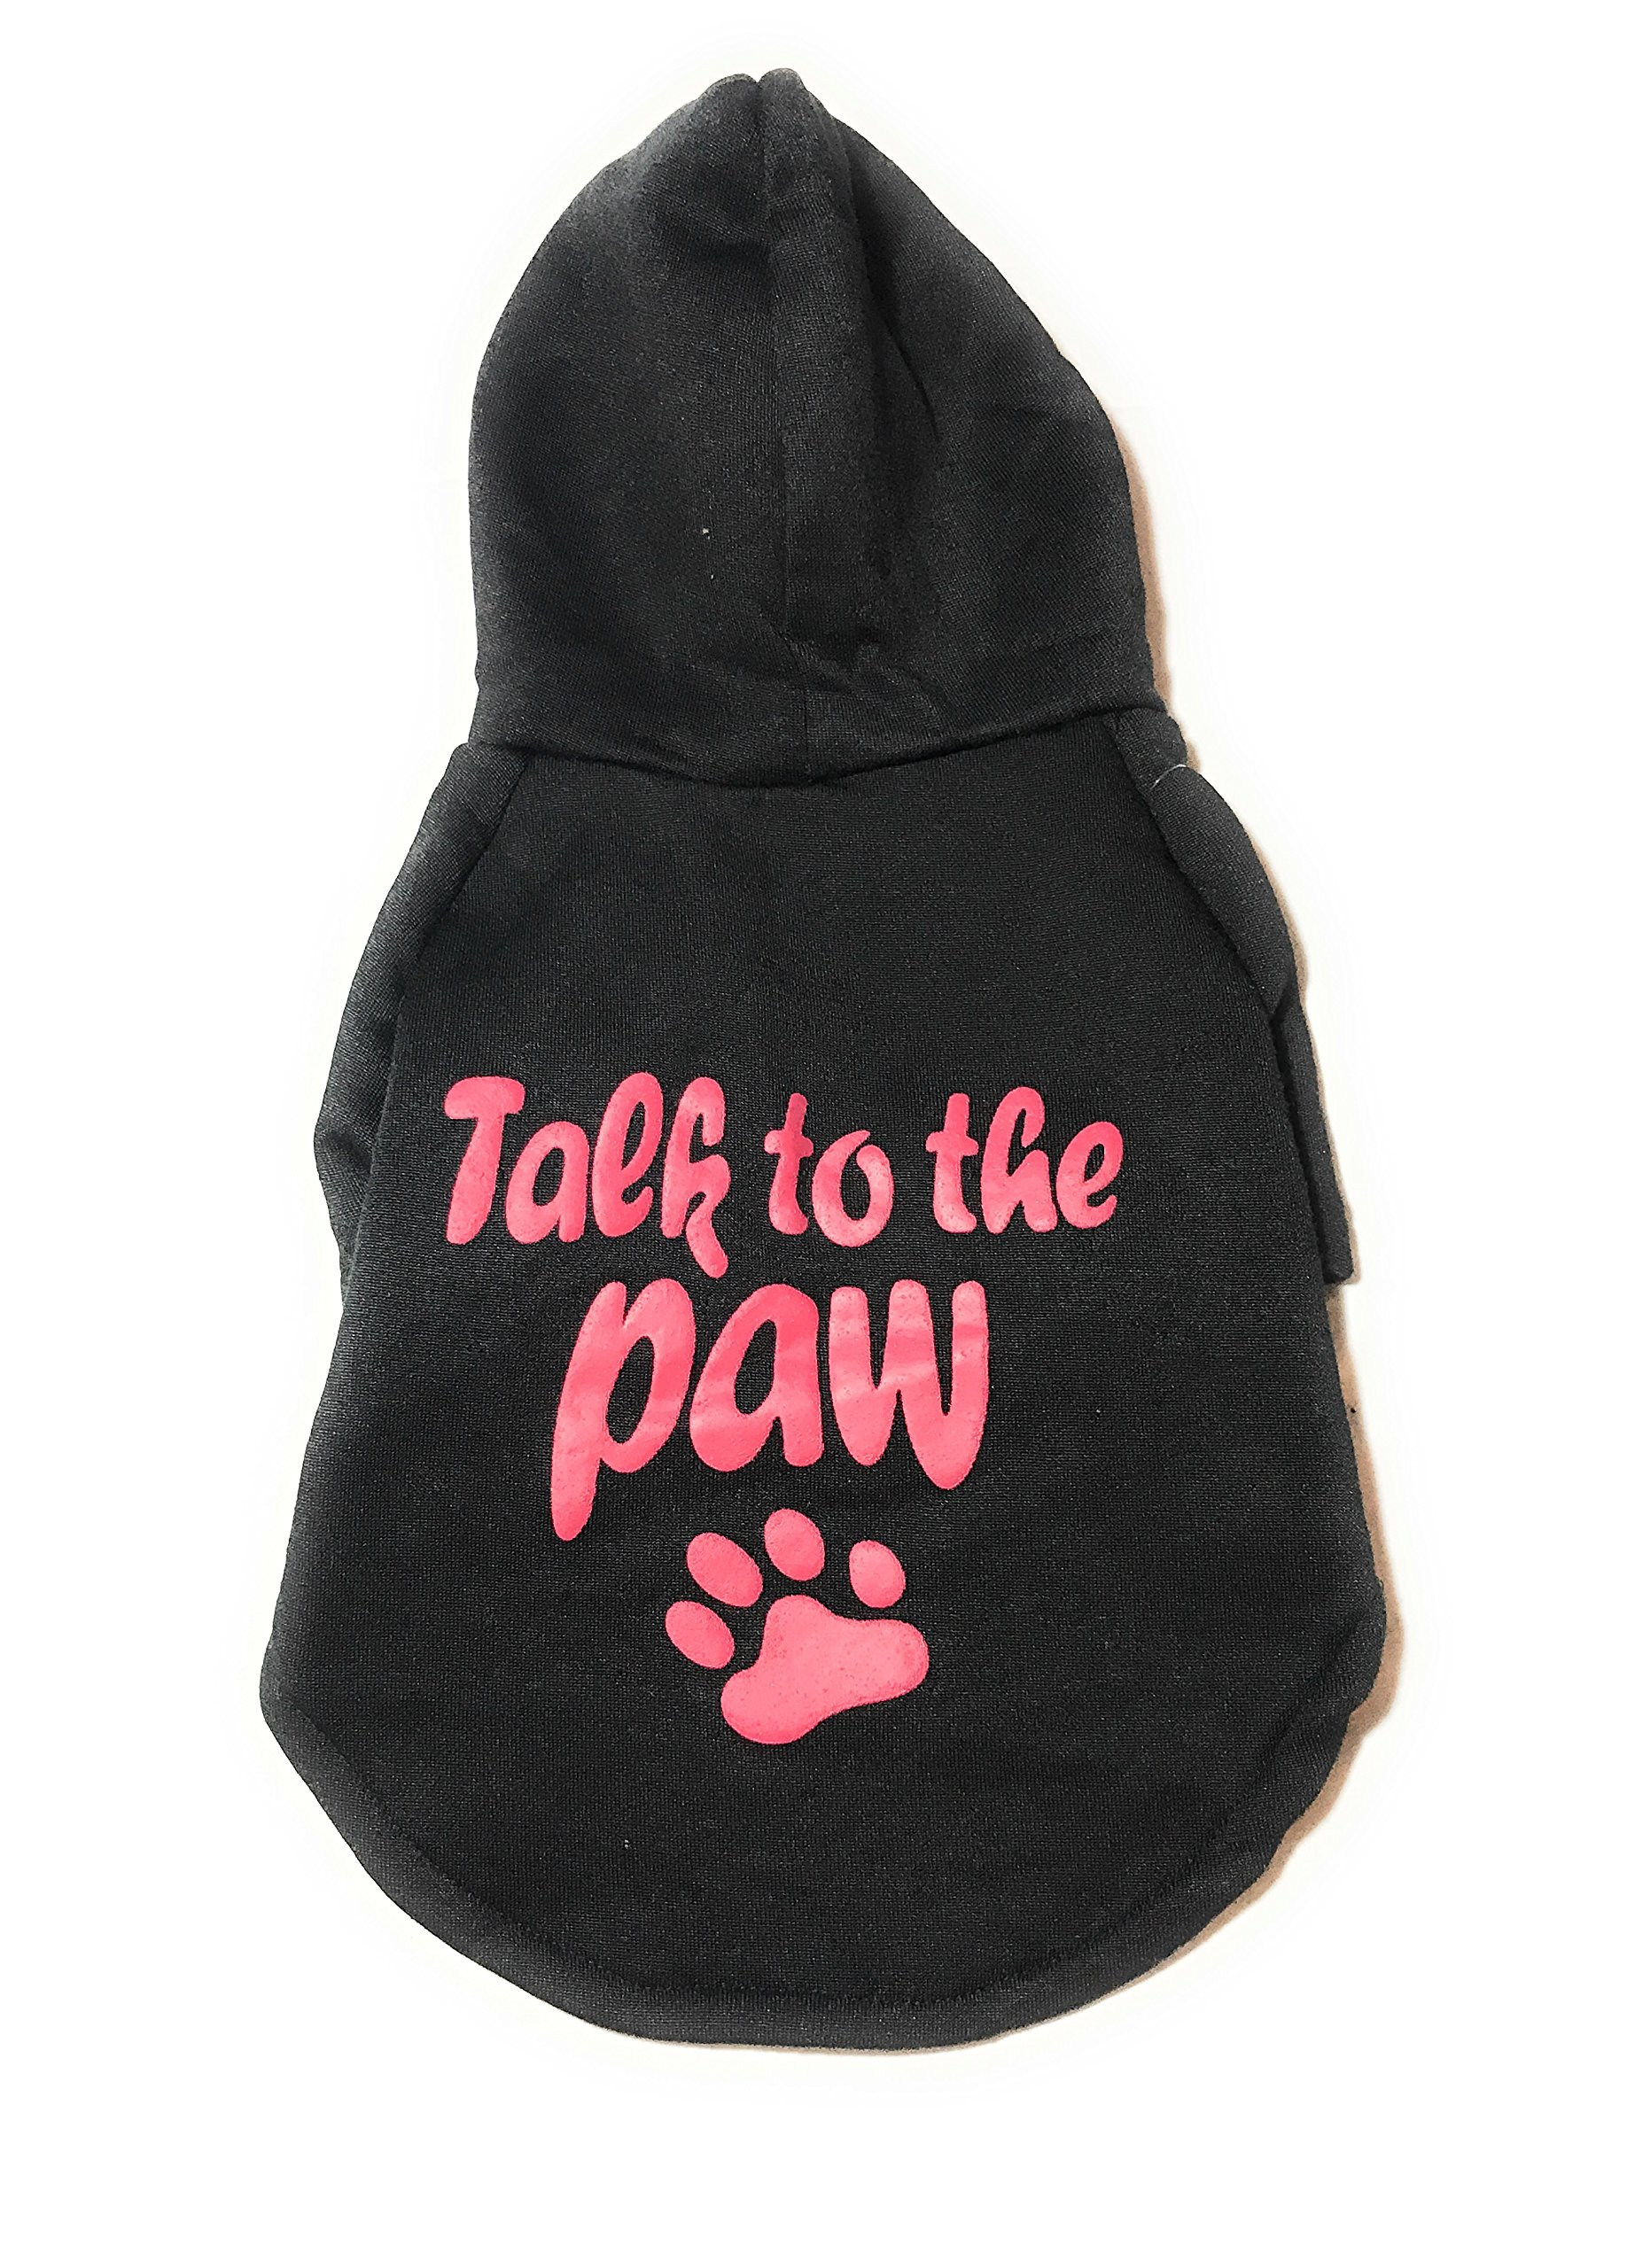 Dog or Puppy Sweater Hoodie ´Talk To The Paw´ Black for Medium or Large Pets M size/ Medium Fashion and Funny Hoodie Shirt Petmont Brand For Boys Or Girls